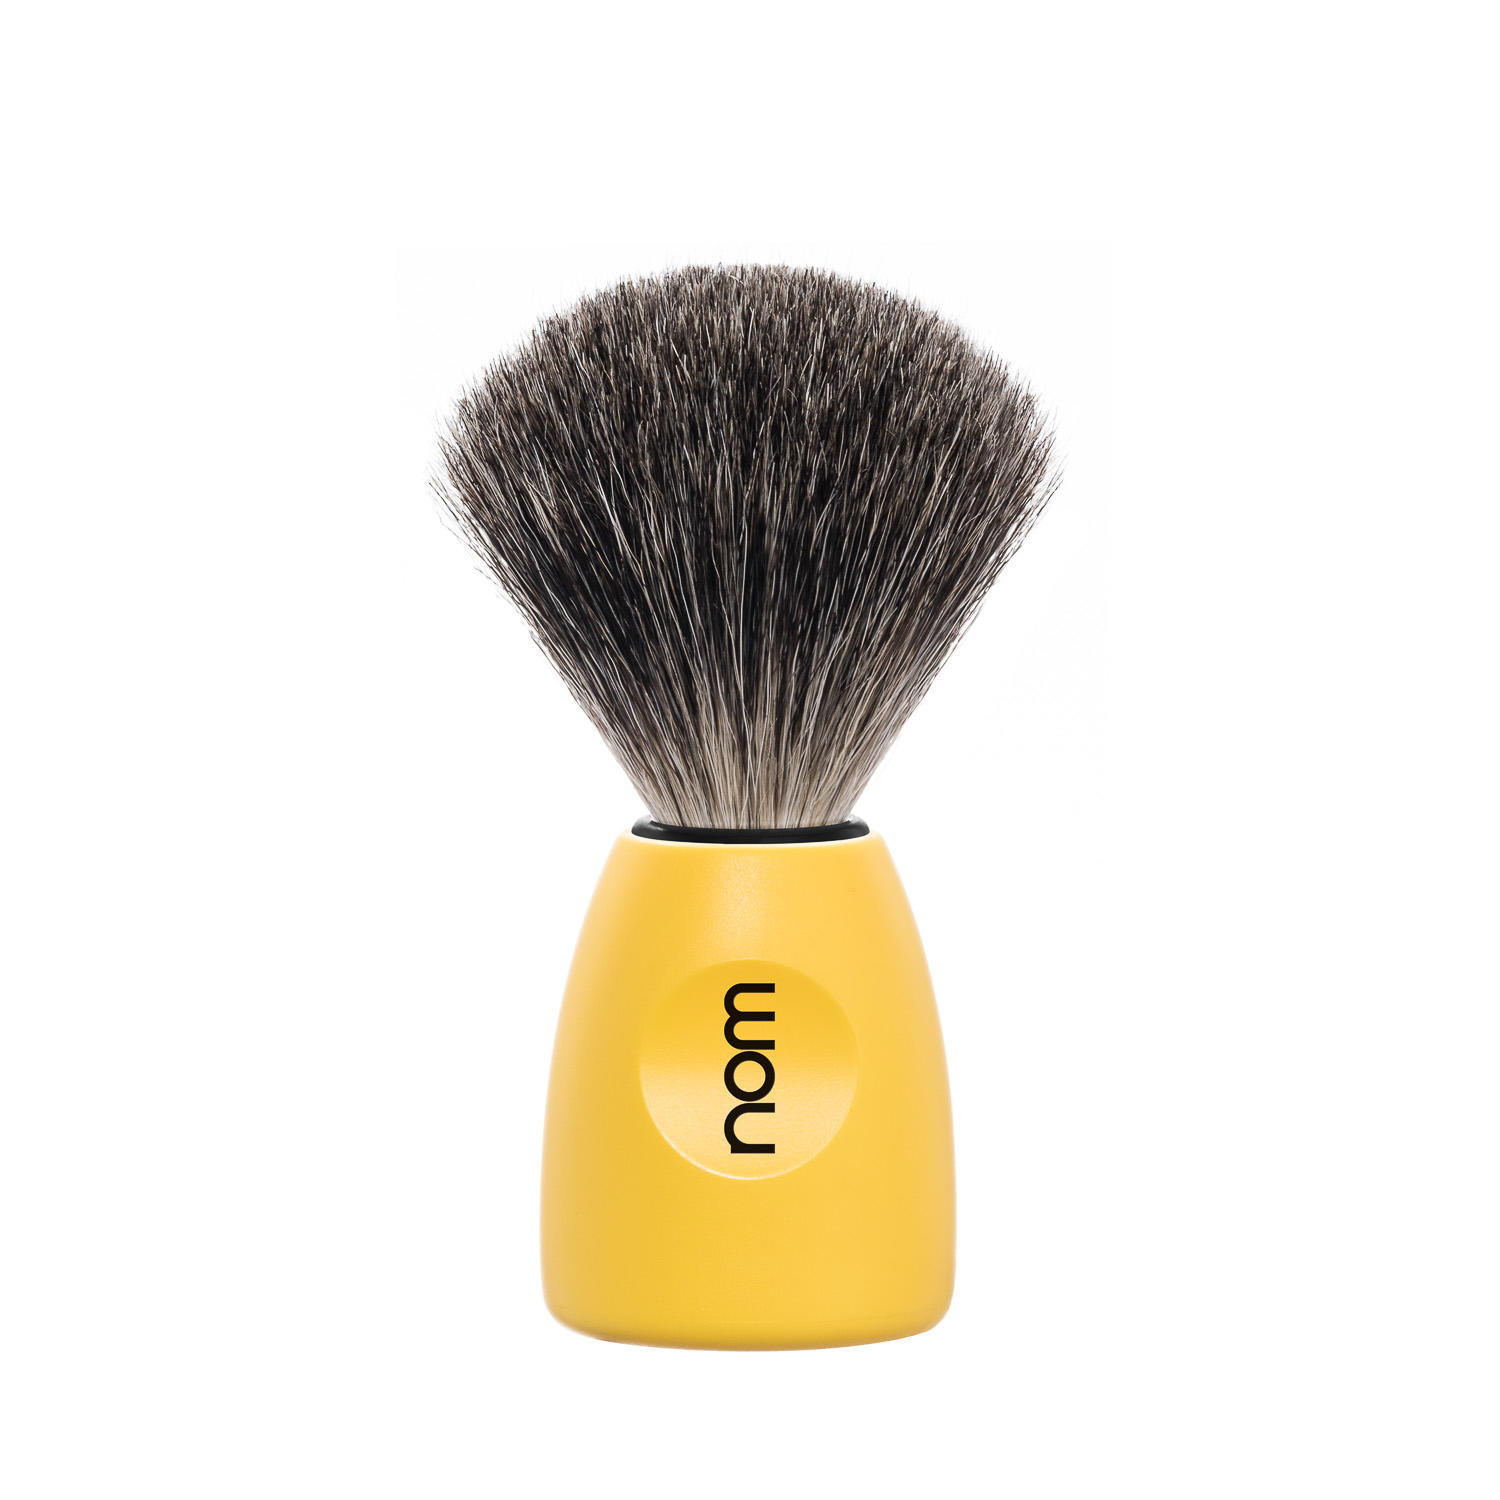 LASSE81LE NOM, LASSE Lemon Pure Badger Shaving Brush